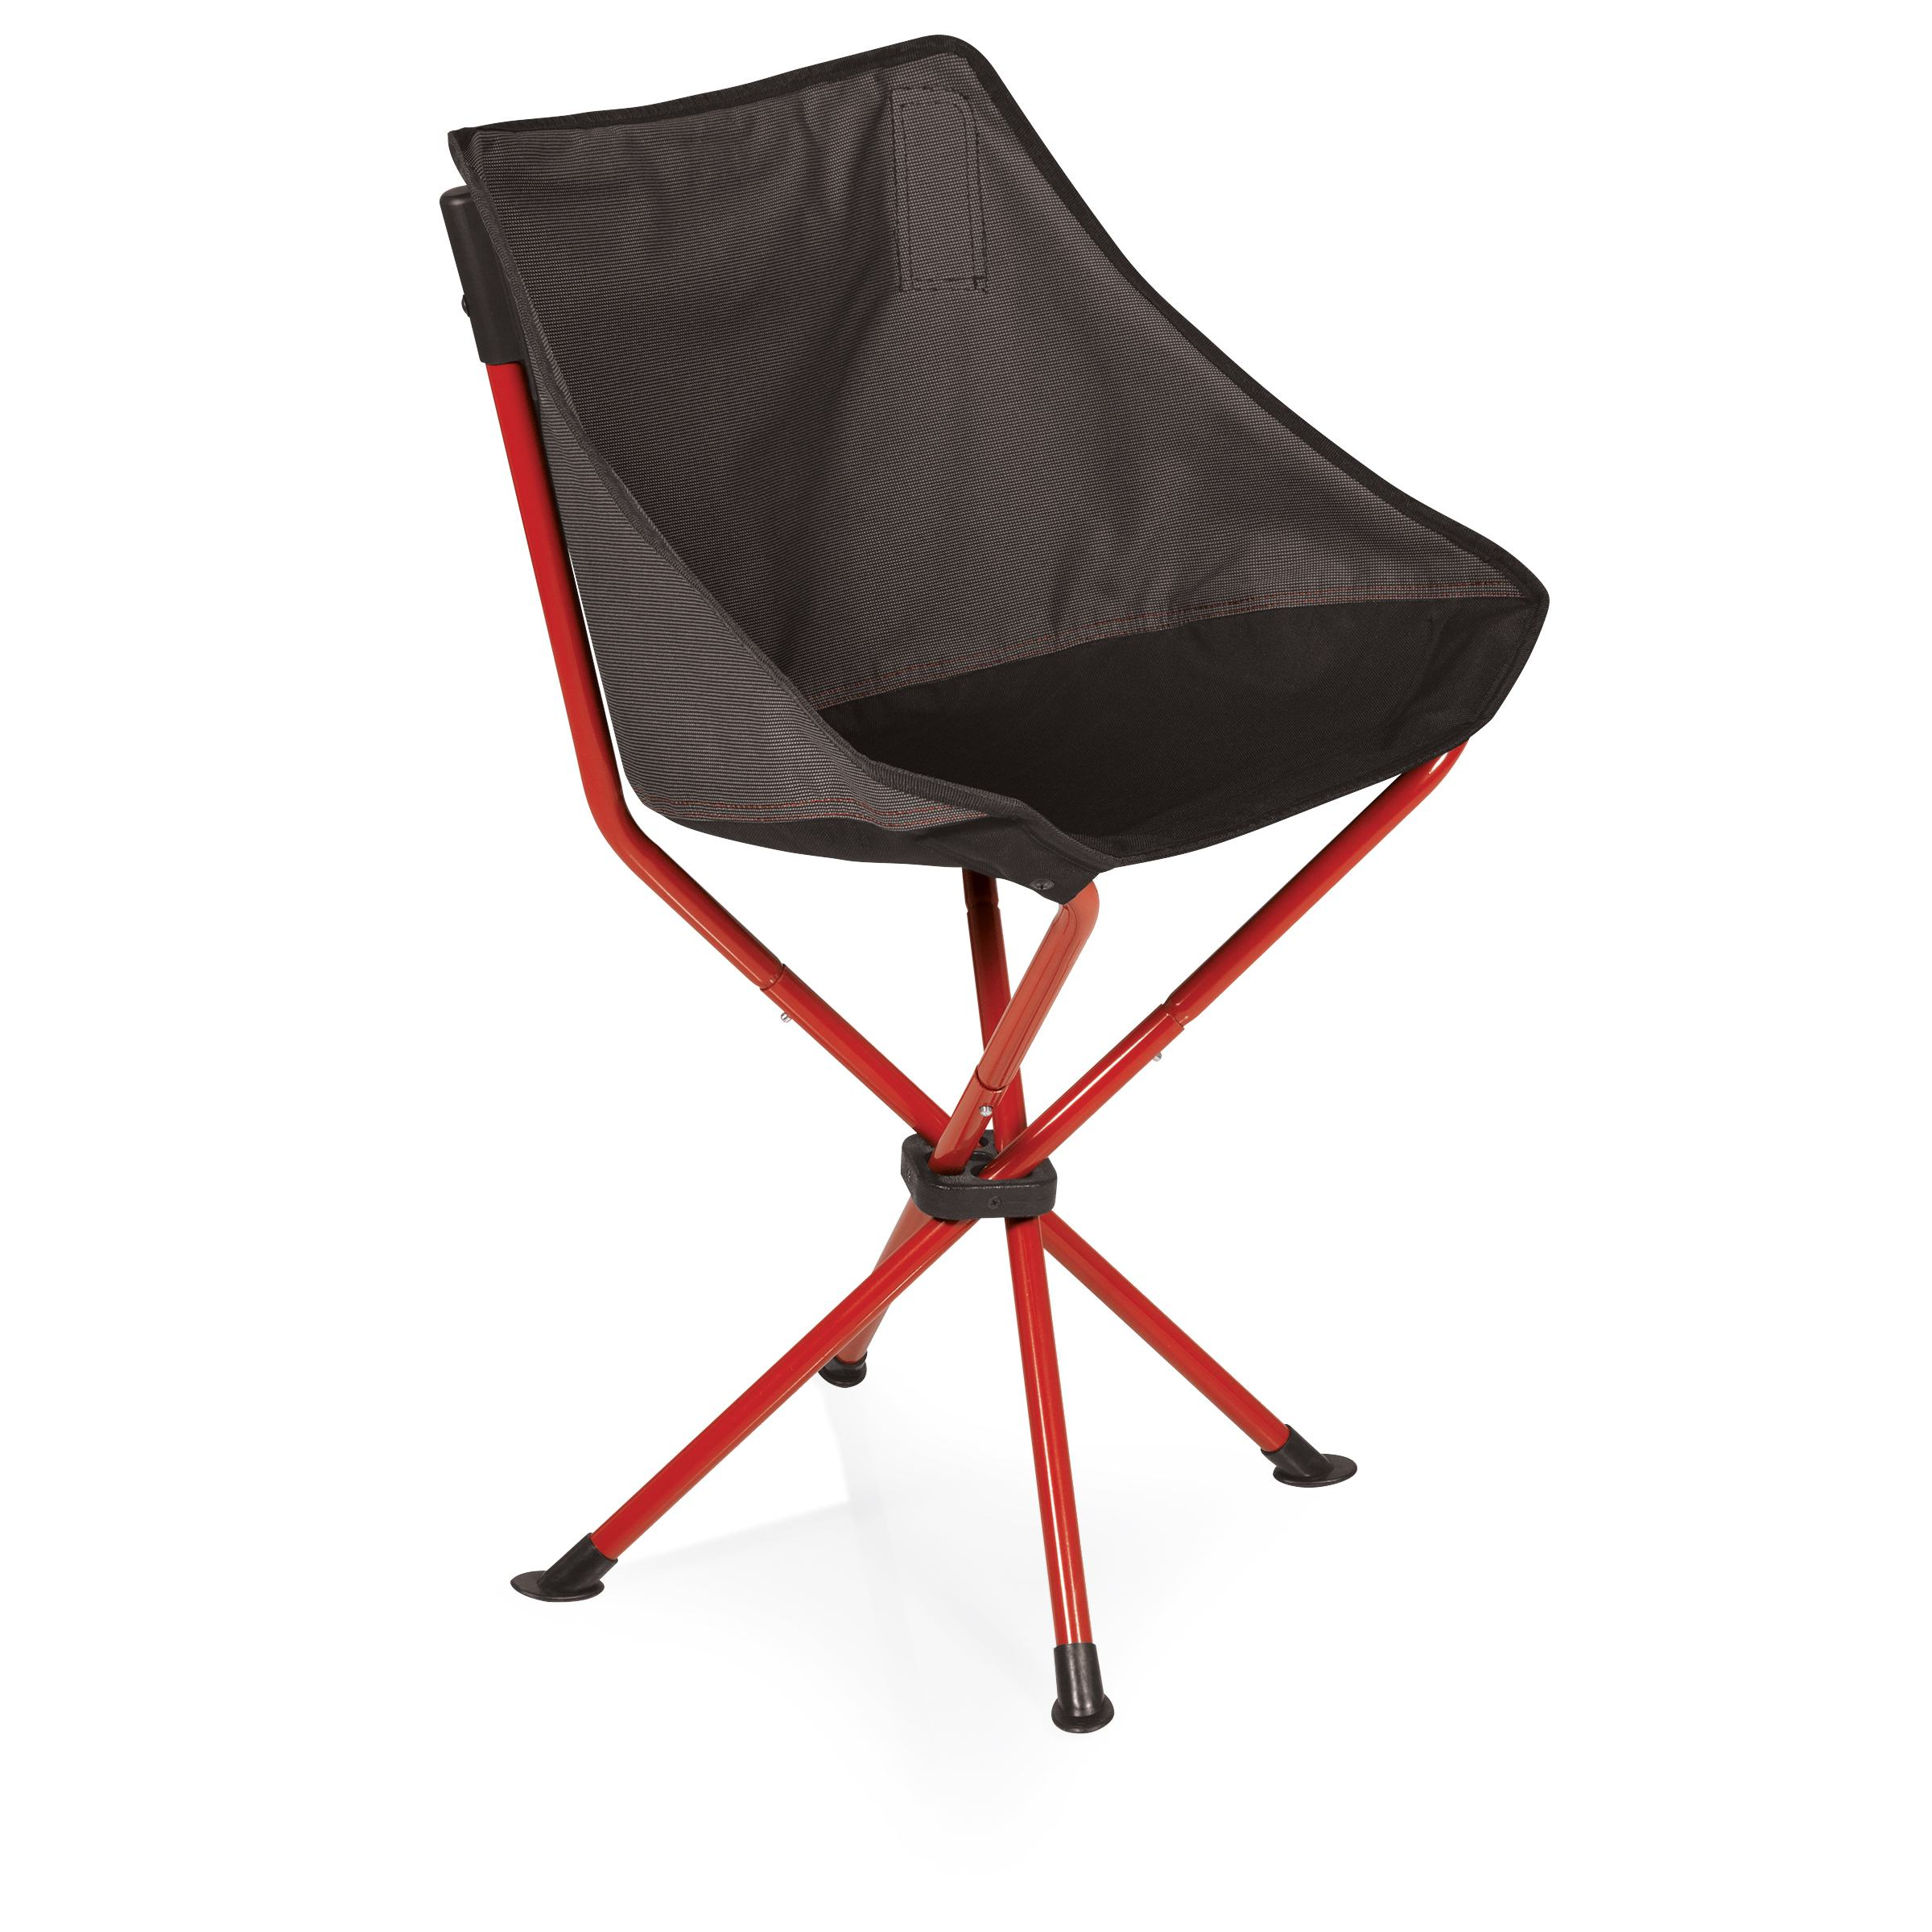 Pt-odyssey Portable Chair Grey/red